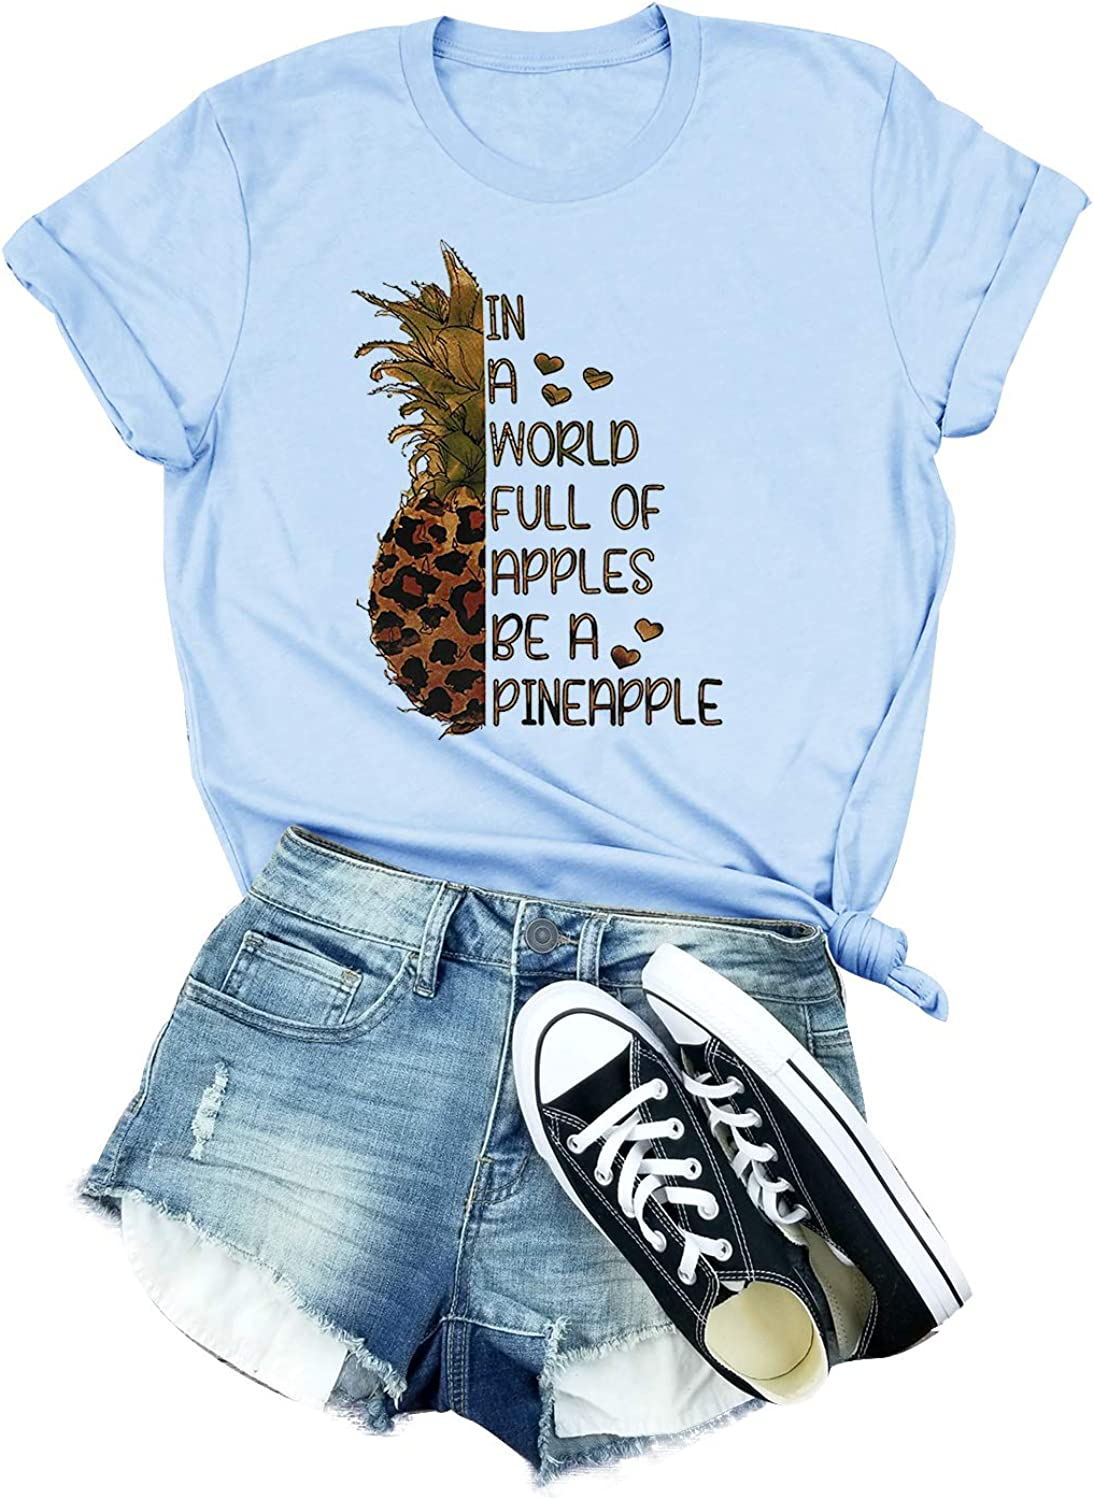 Full of Apples Be A Pineapple T-Shirt Women Fruit Graphic Funny Short Sleeve Tee Tops